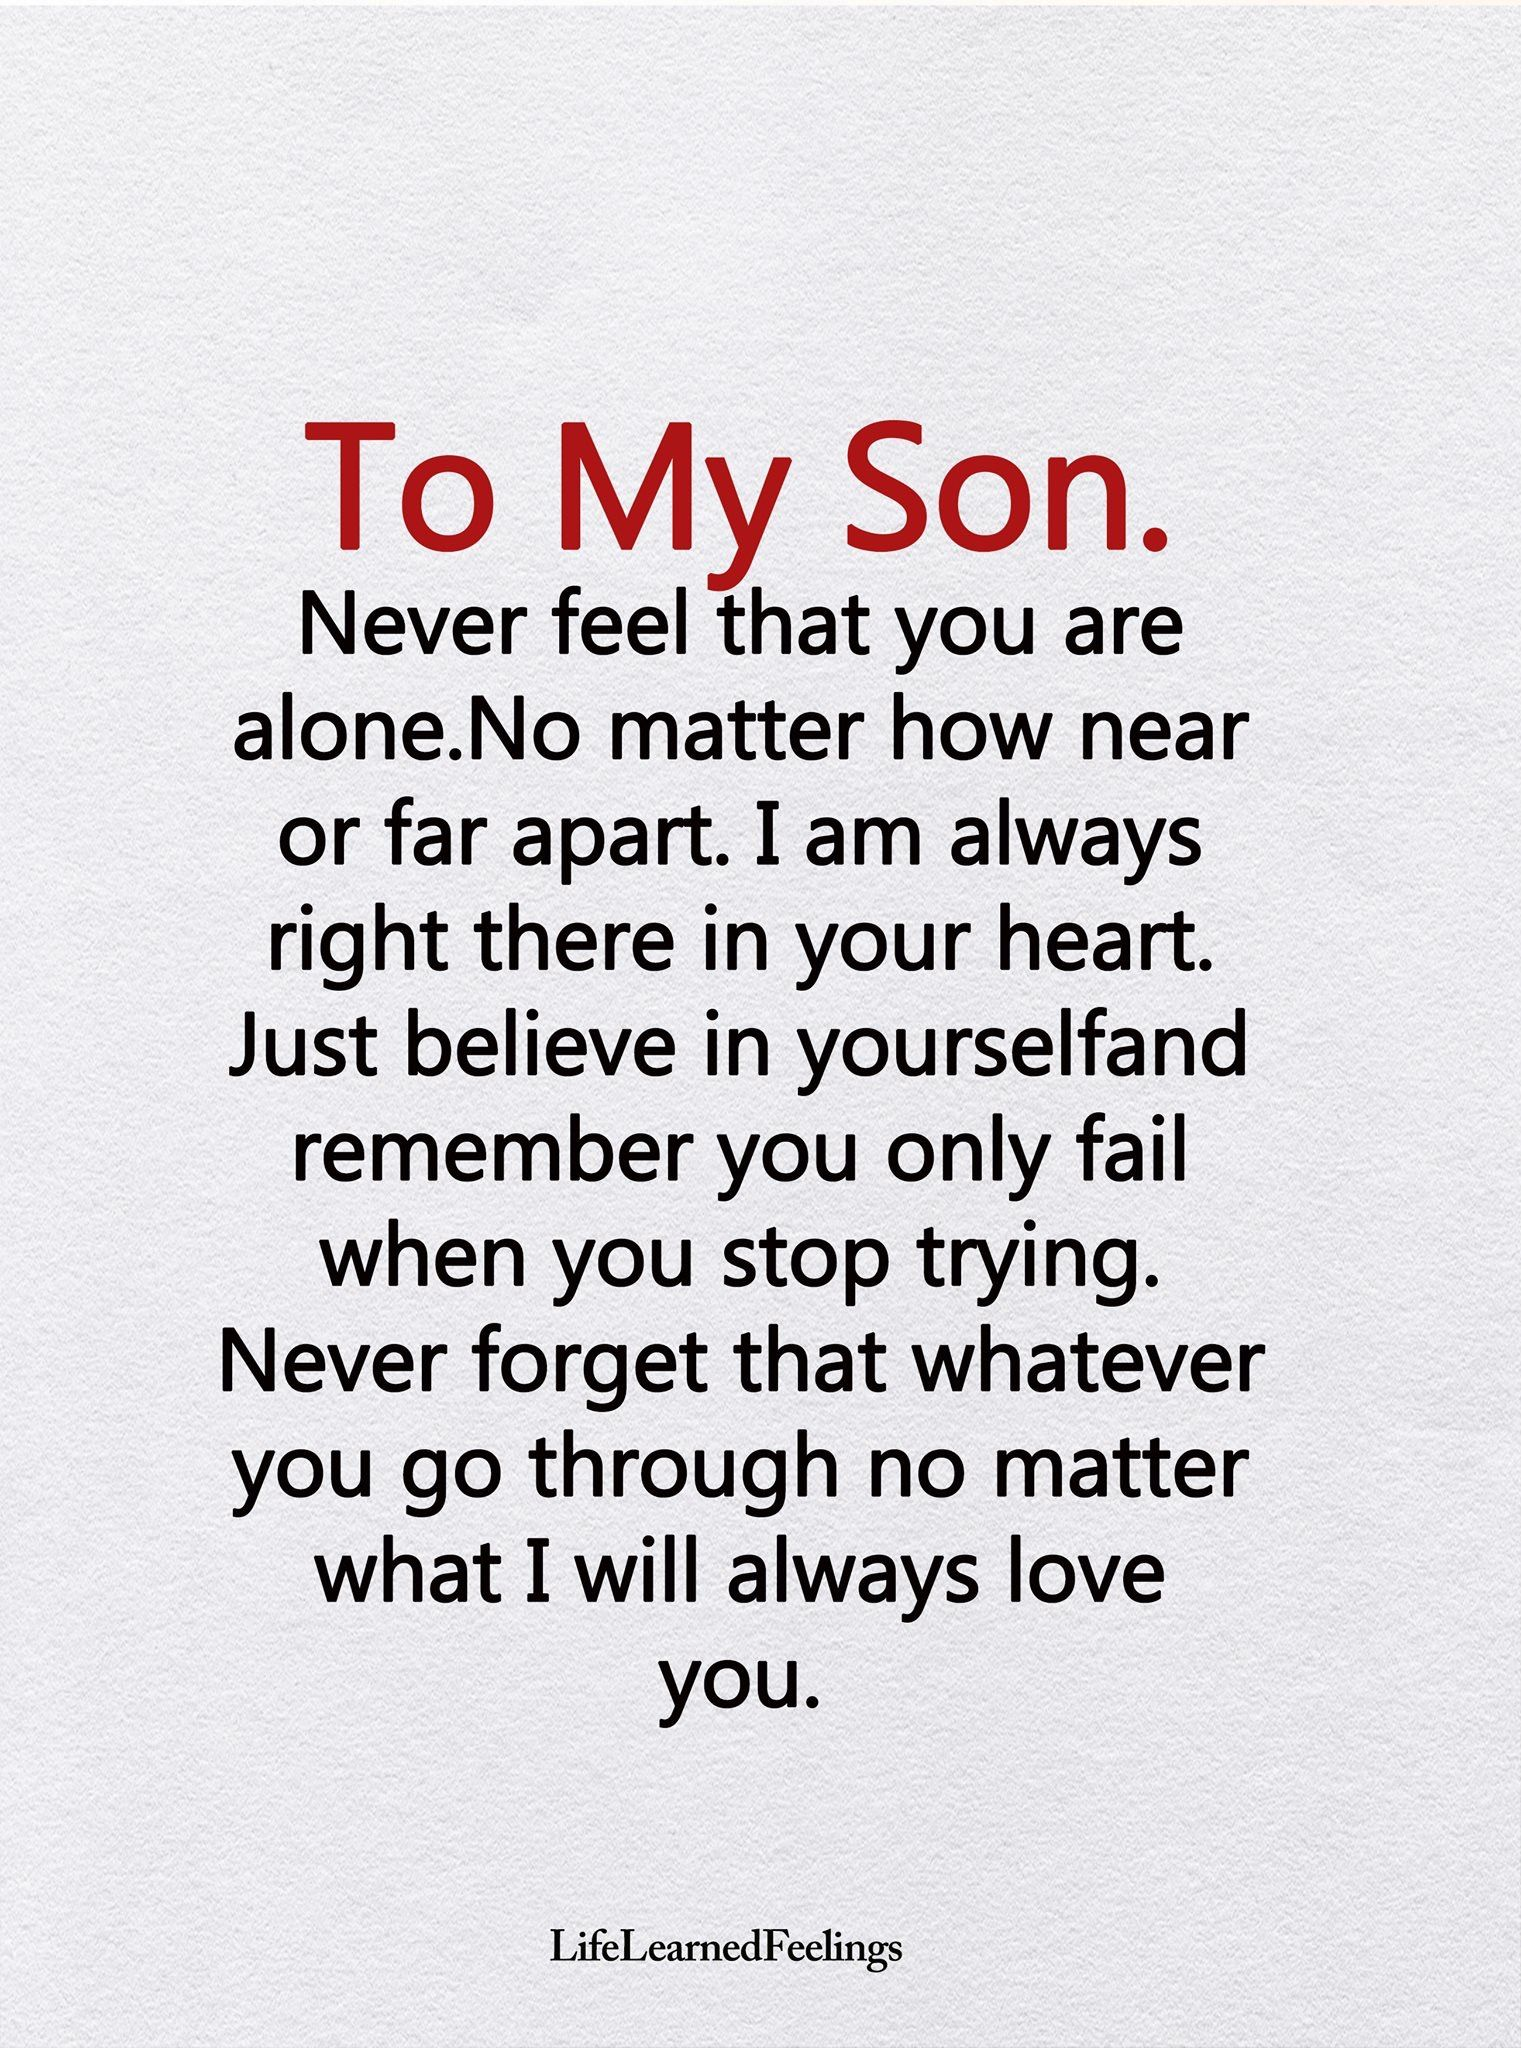 Pin By Eva On For My Sons Mothers Love Quotes Son Quotes From Mom Mother Quotes